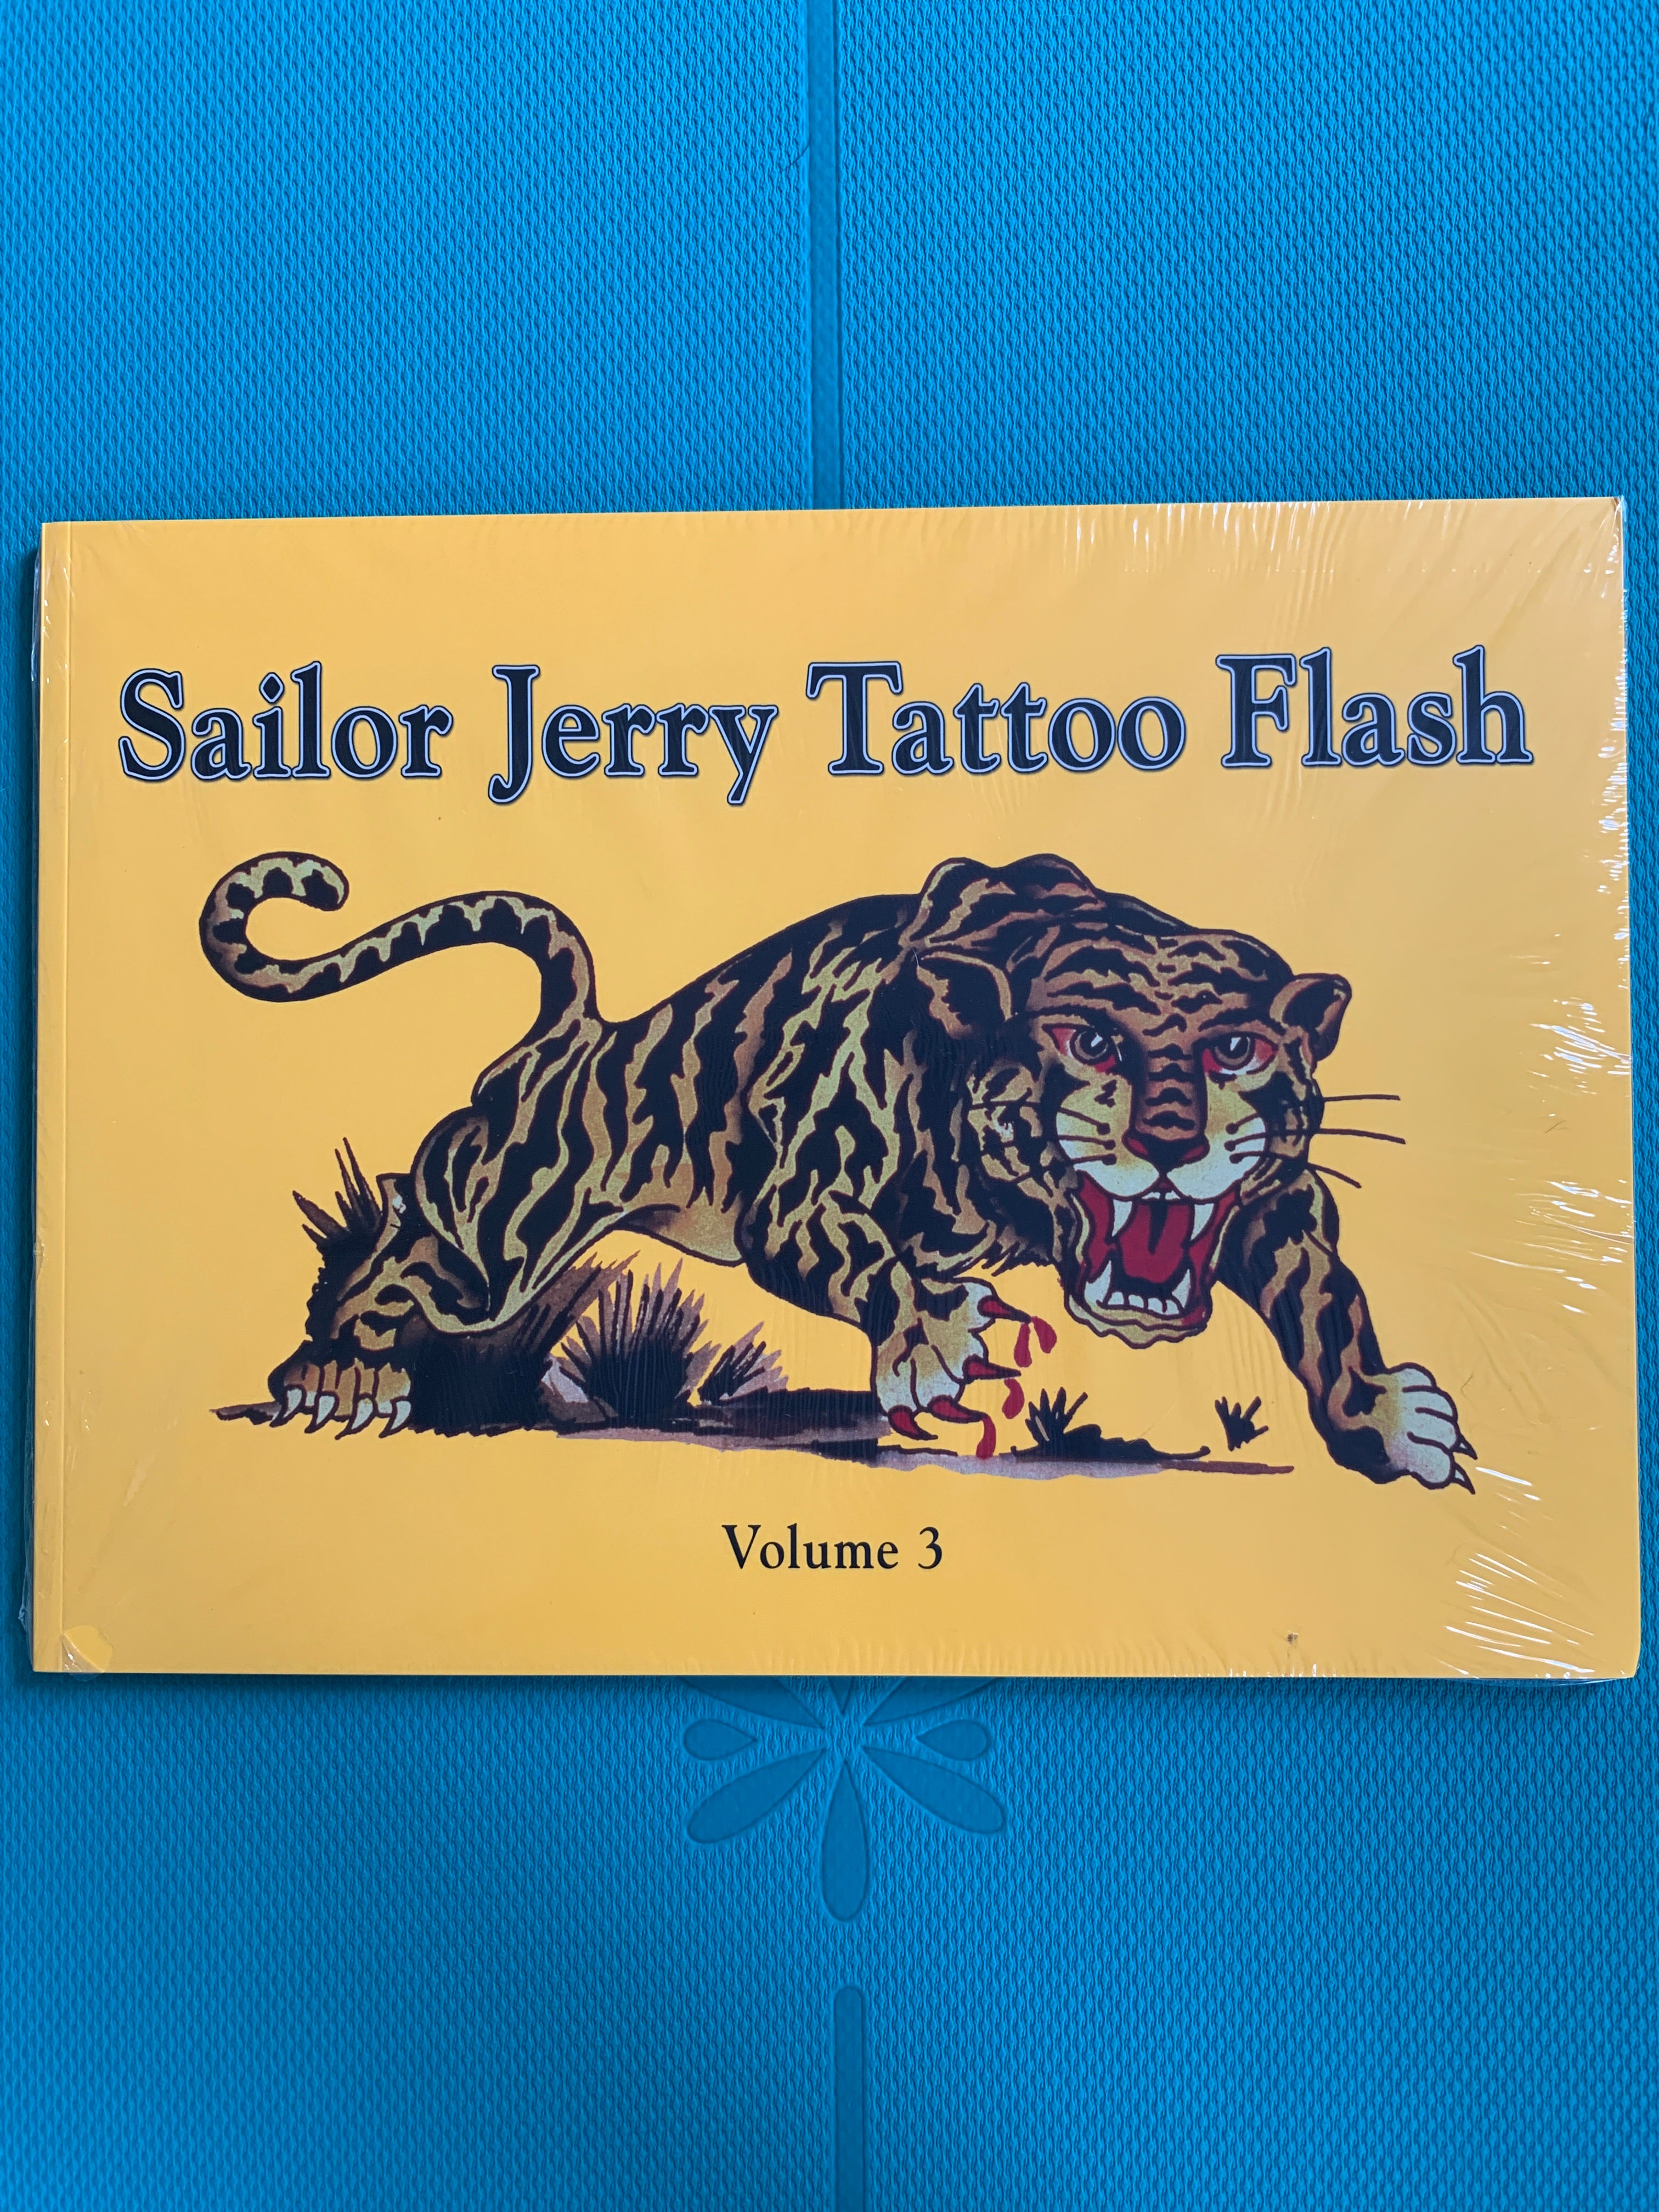 Sailor Jerry Flash Book Timcorun